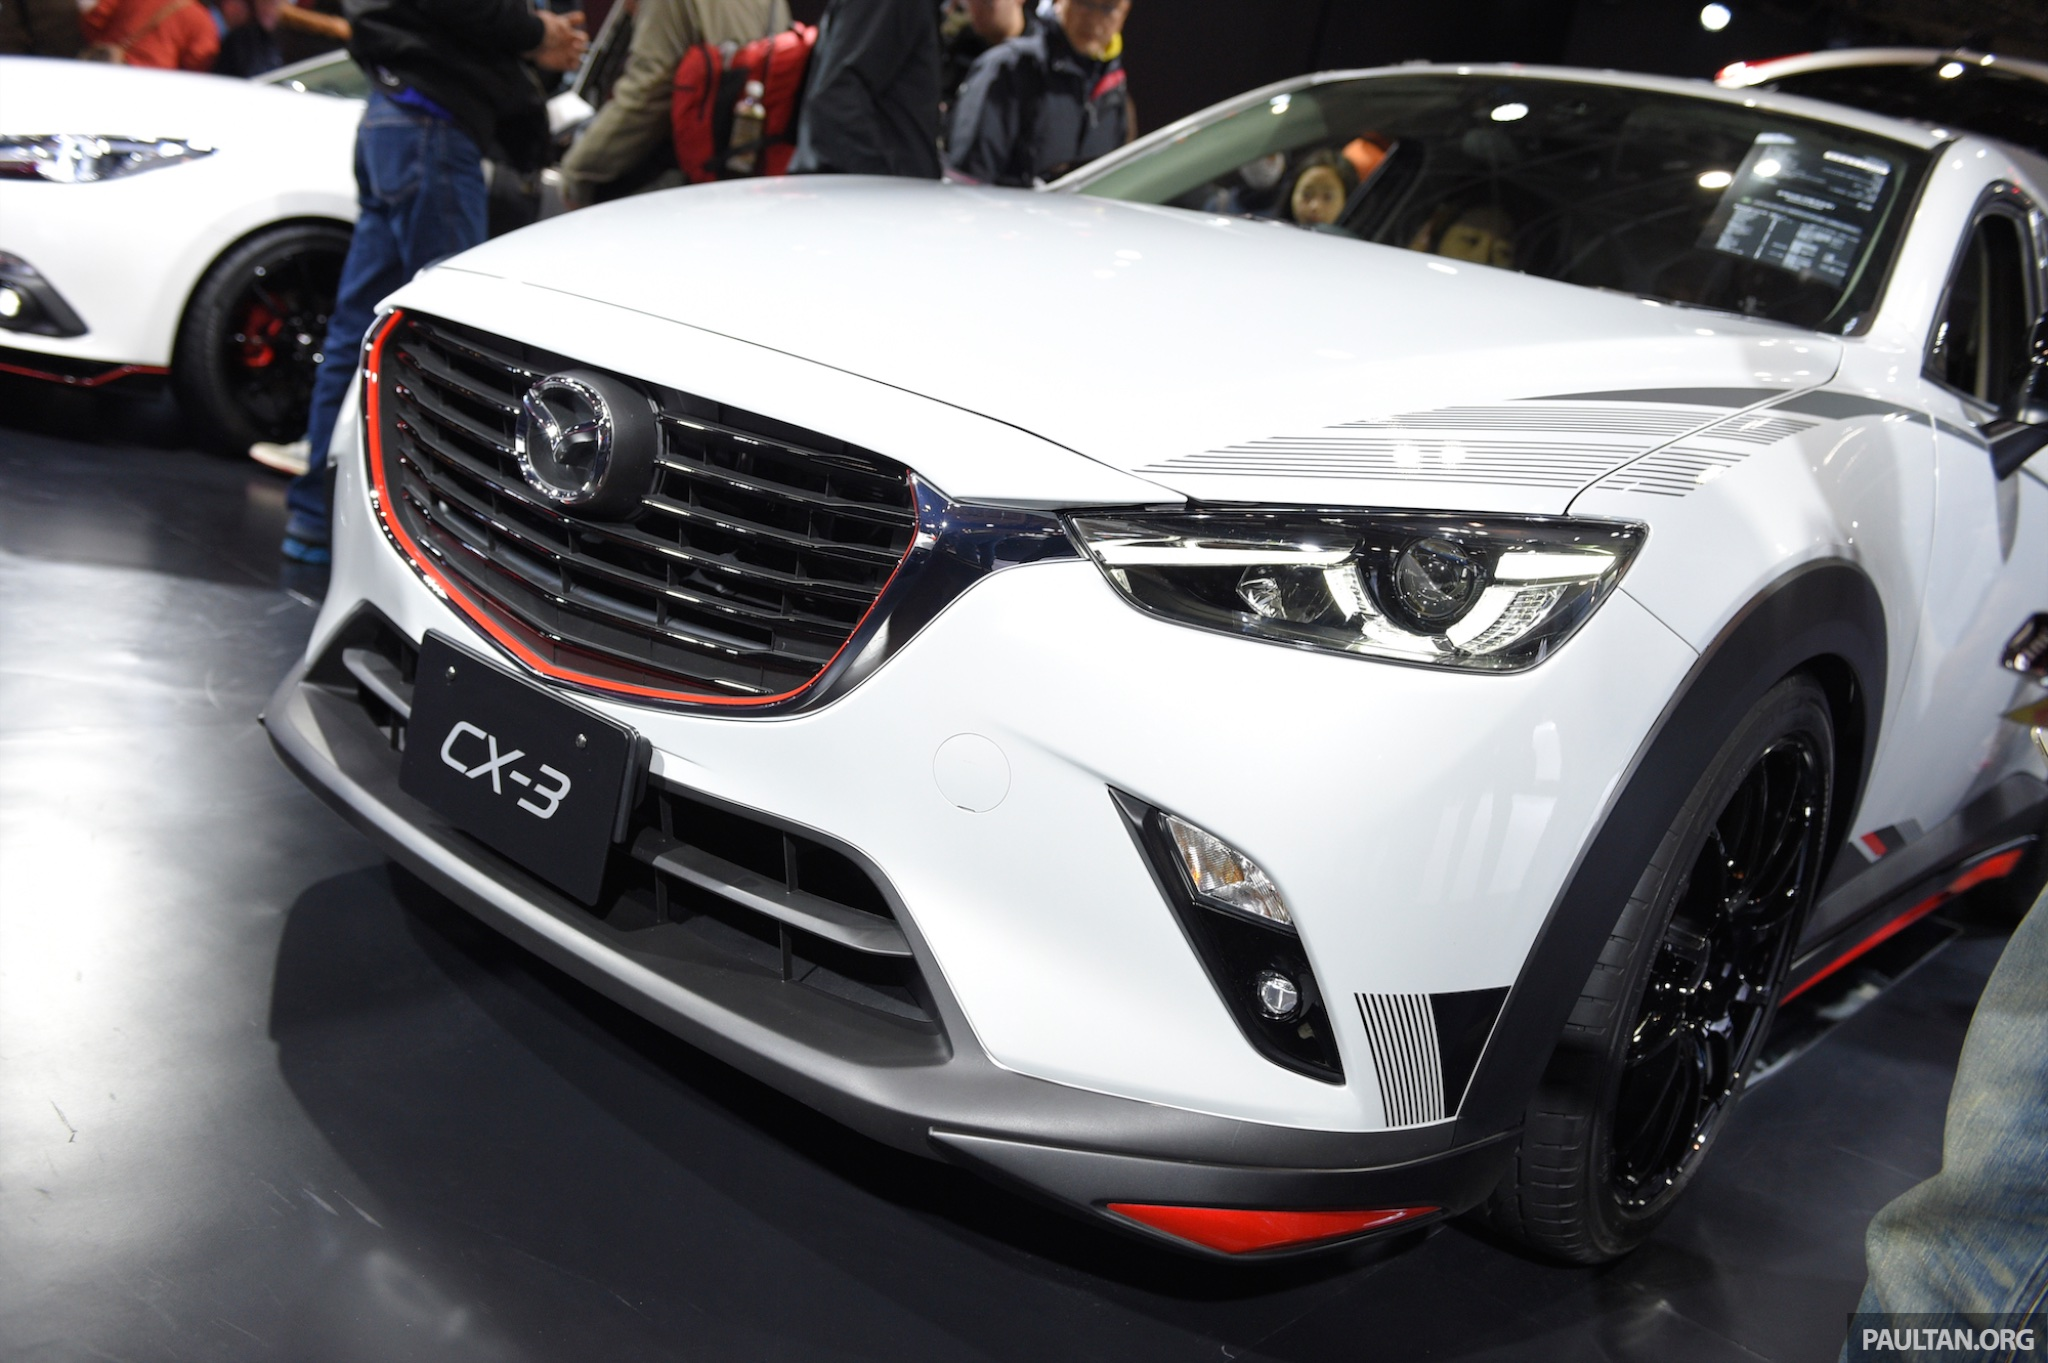 mazda cx 3 racing concept at 2015 tokyo auto salon. Black Bedroom Furniture Sets. Home Design Ideas